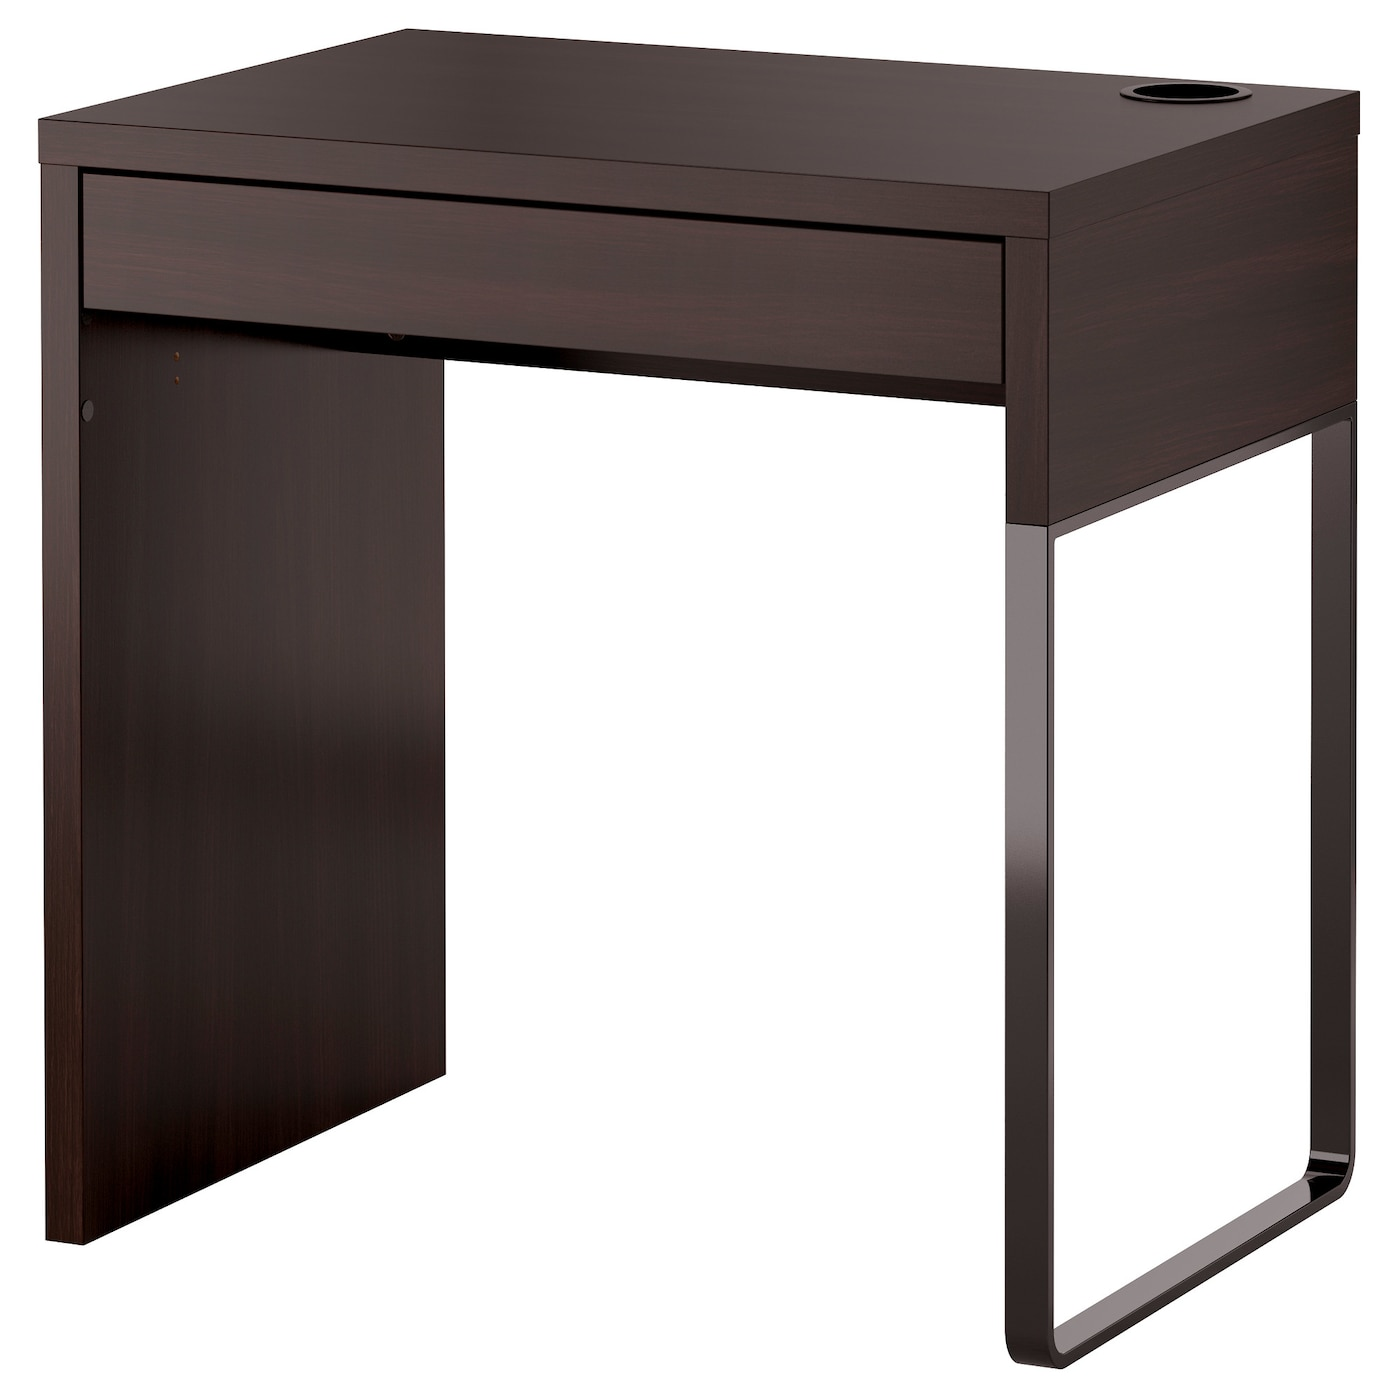 IKEA MICKE Desk You Can Mount The Legs To The Right Or Left, According To